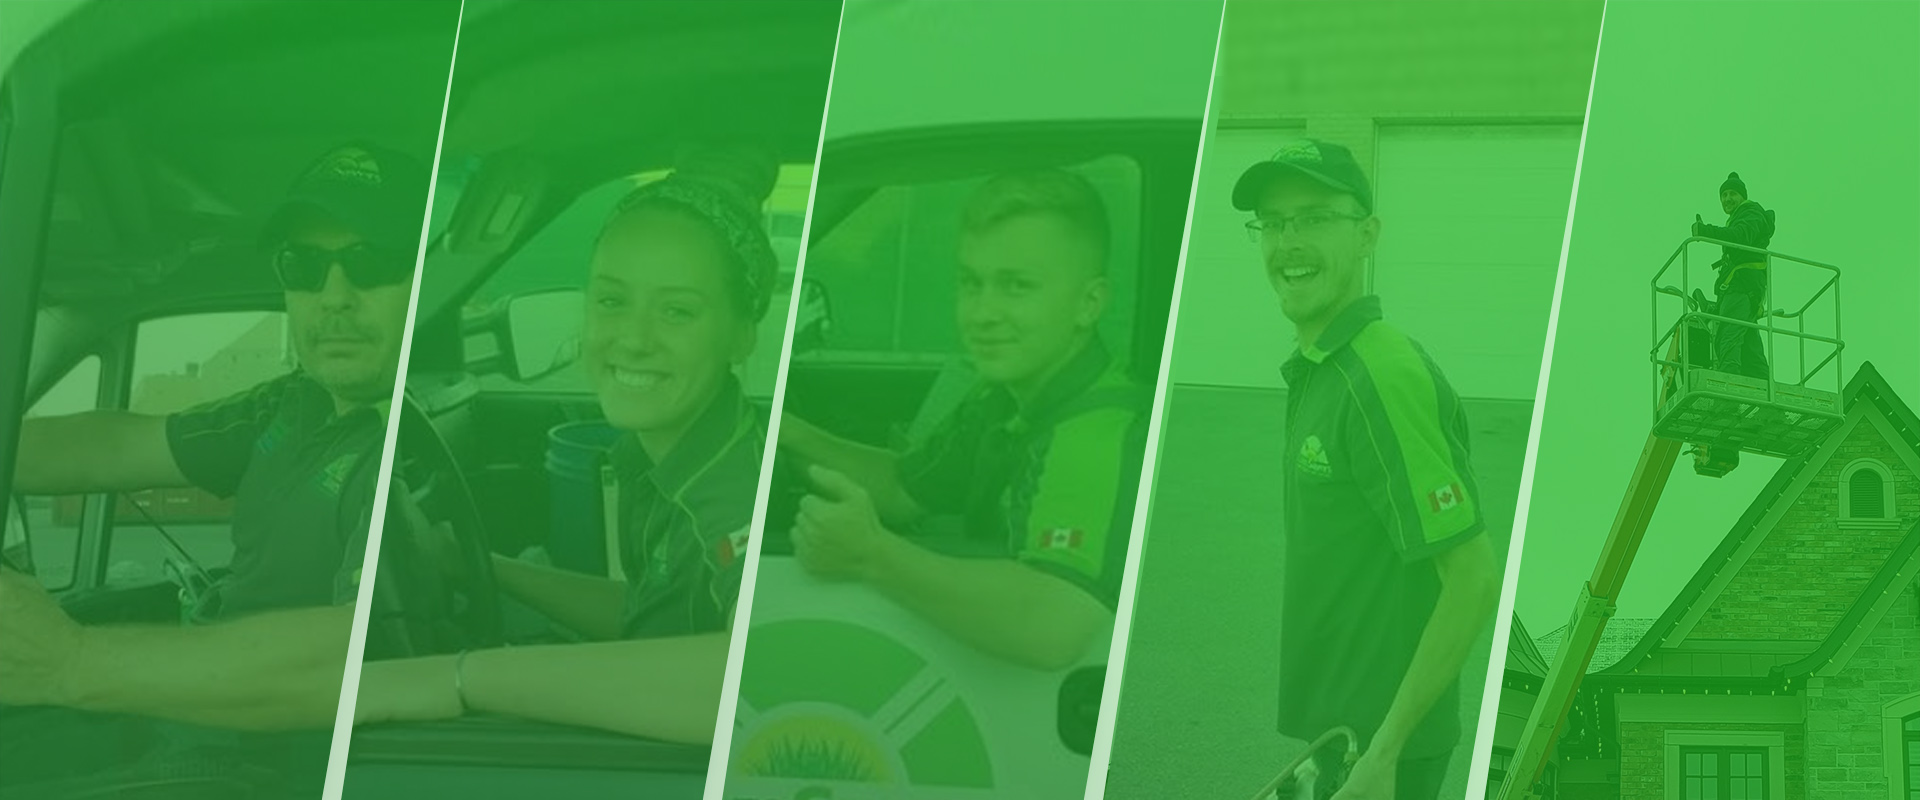 Why Join The LawnSavers Team?